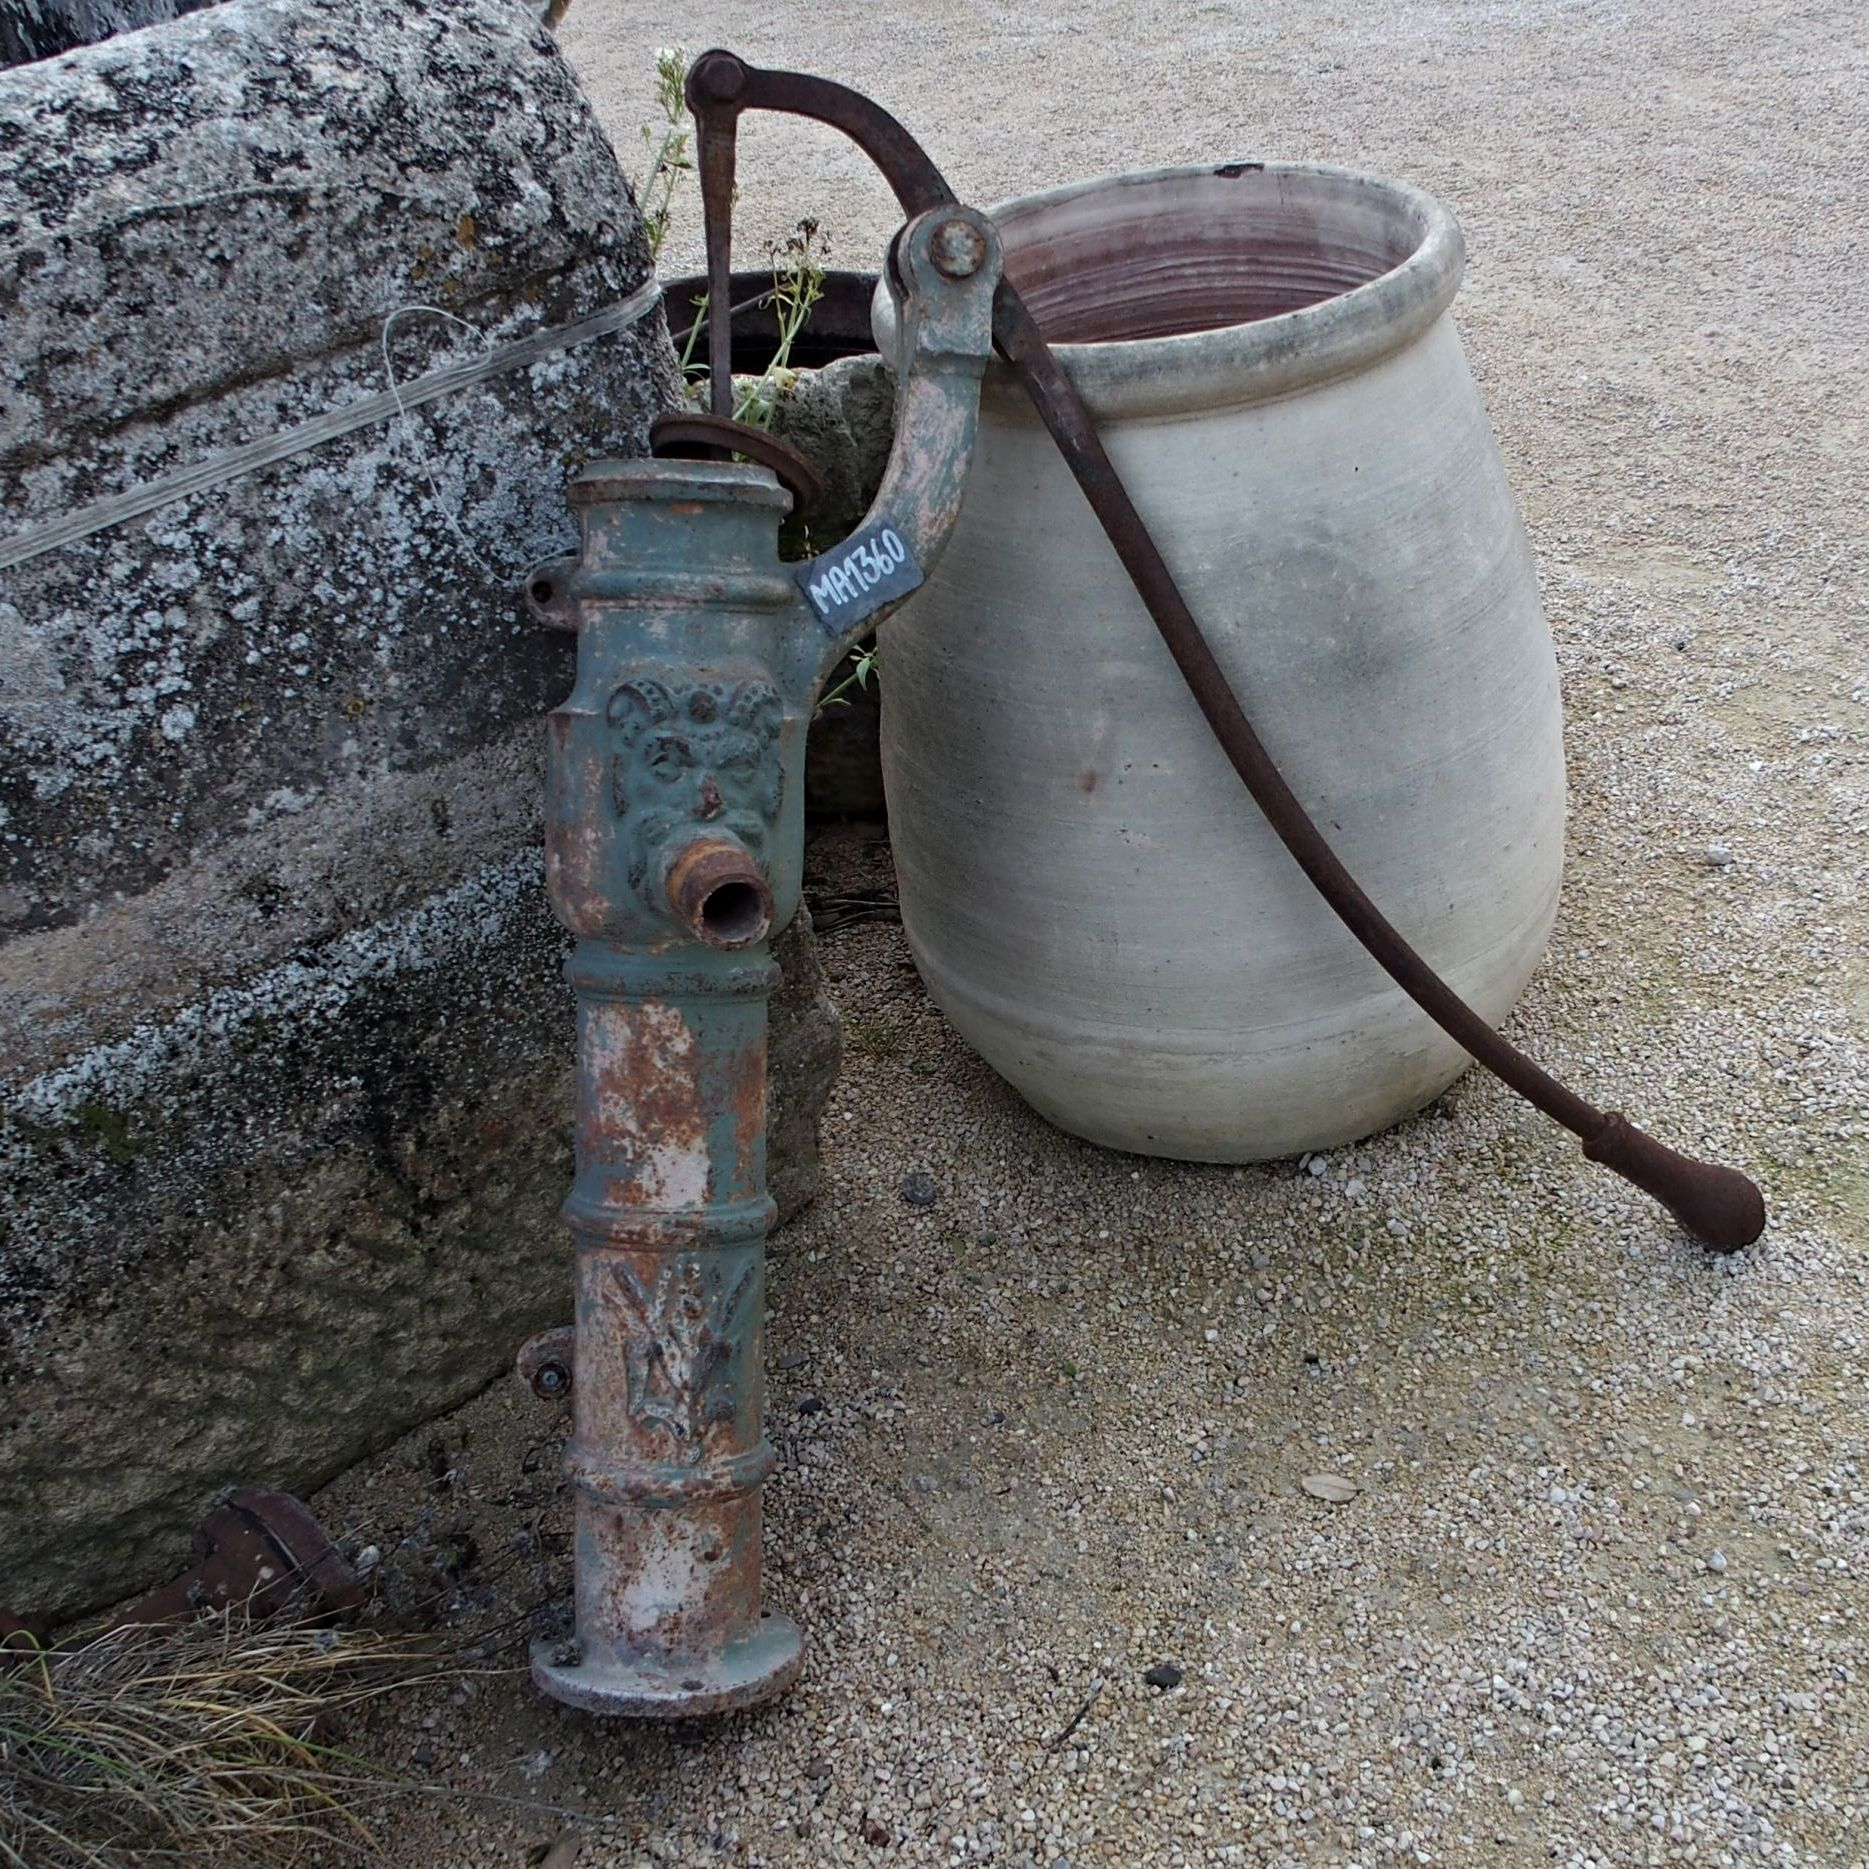 Superb manual pump - a manual pump with green patina.